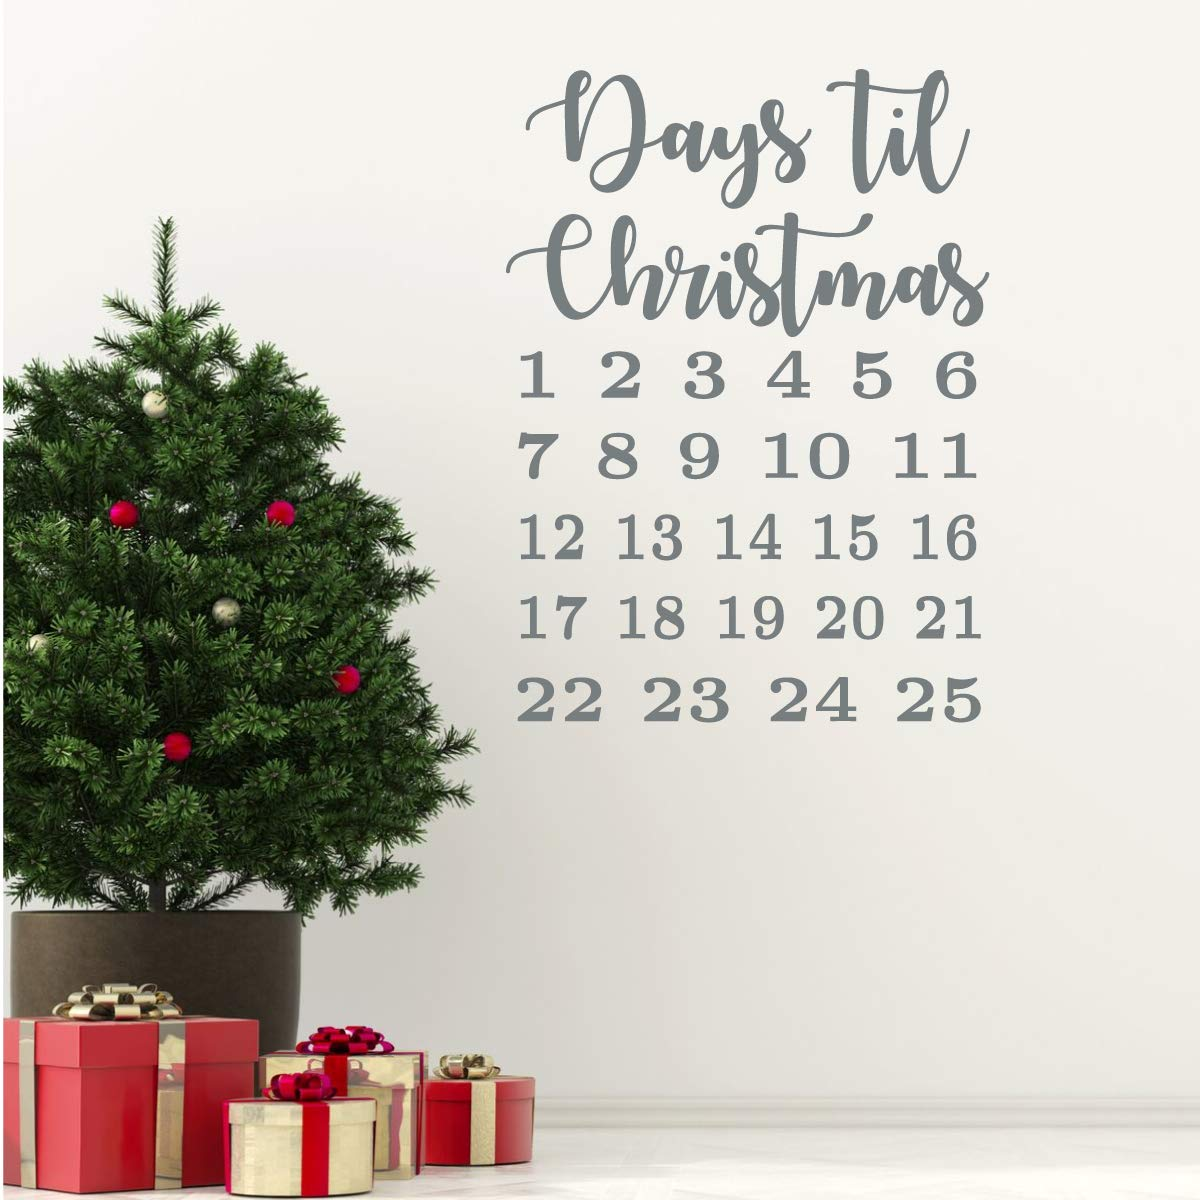 Christmas Count Down.Christmas Countdown Calendar Decal Vinyl Decor Wall Decal